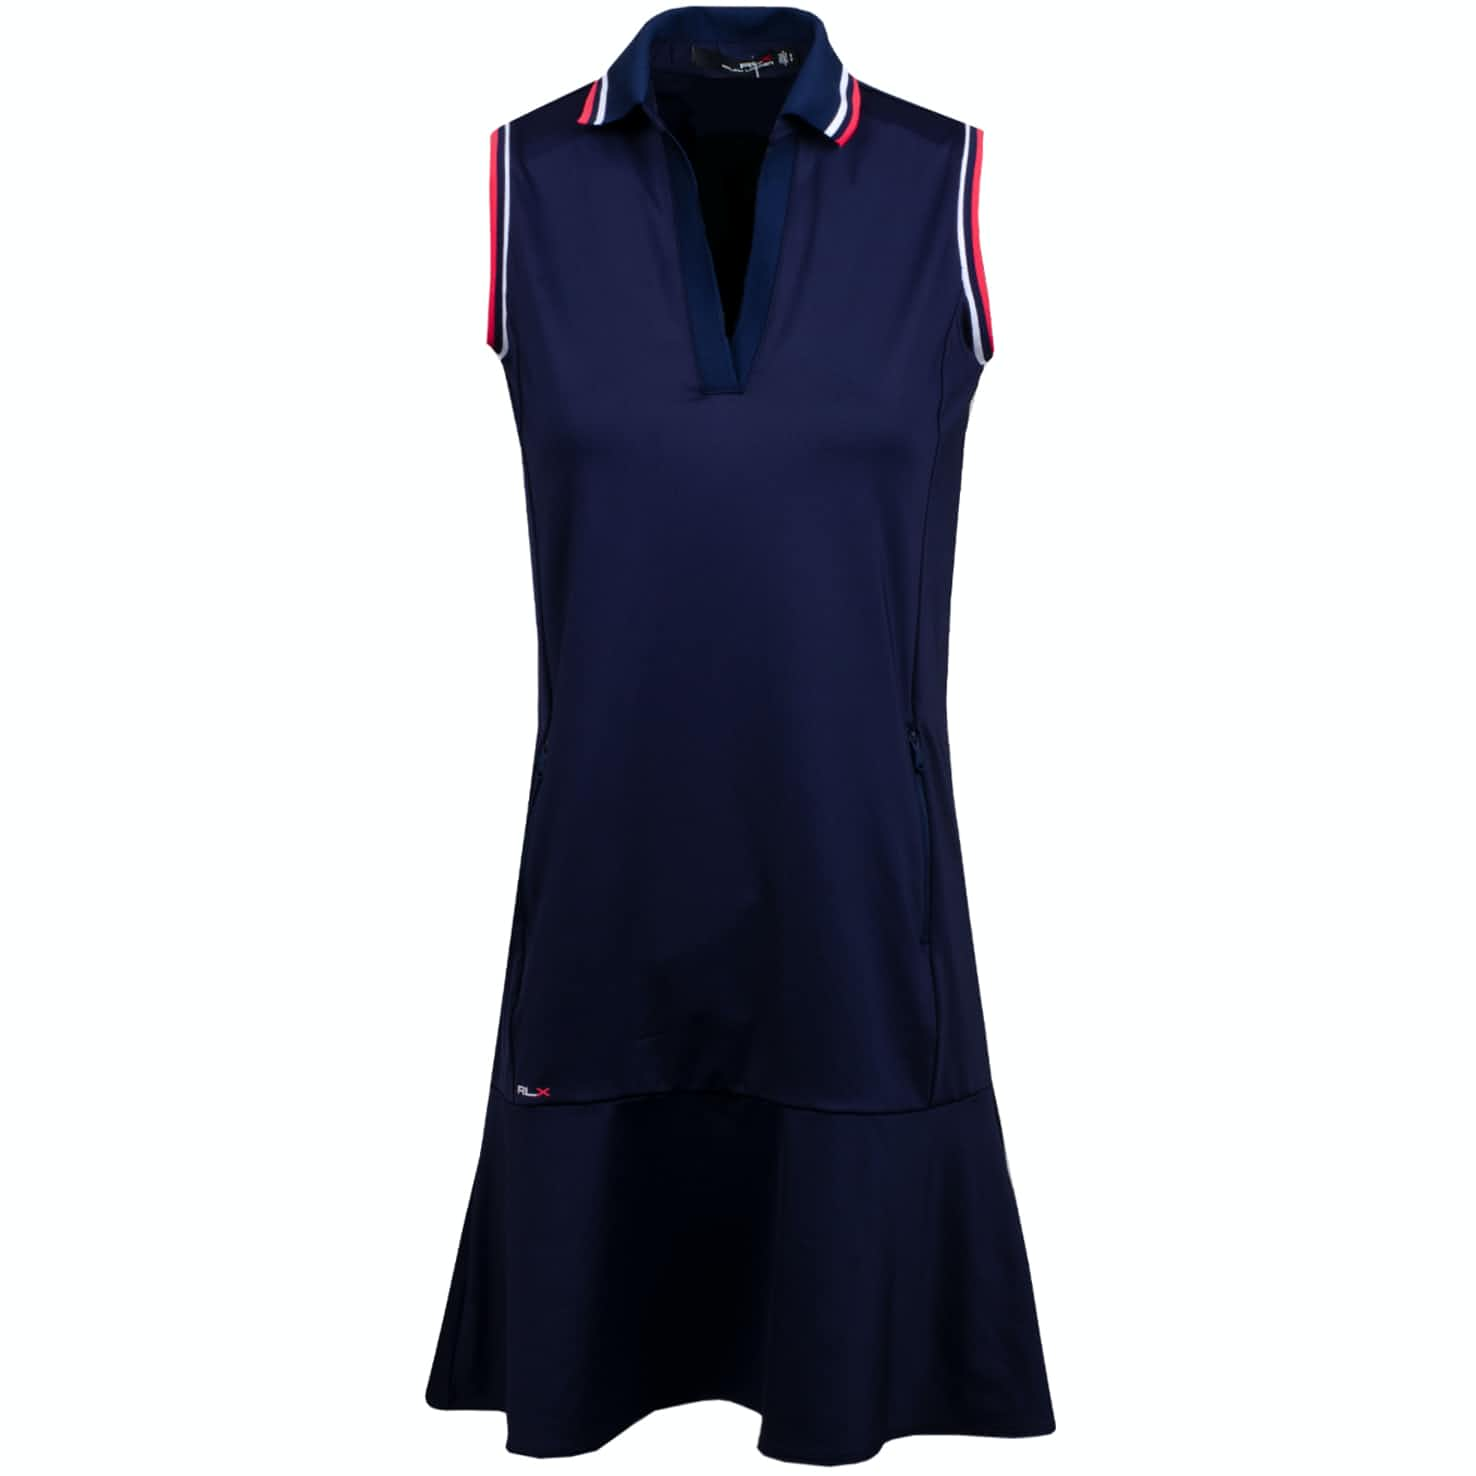 Womens SL Elite Wicking Dress French Navy - AW19